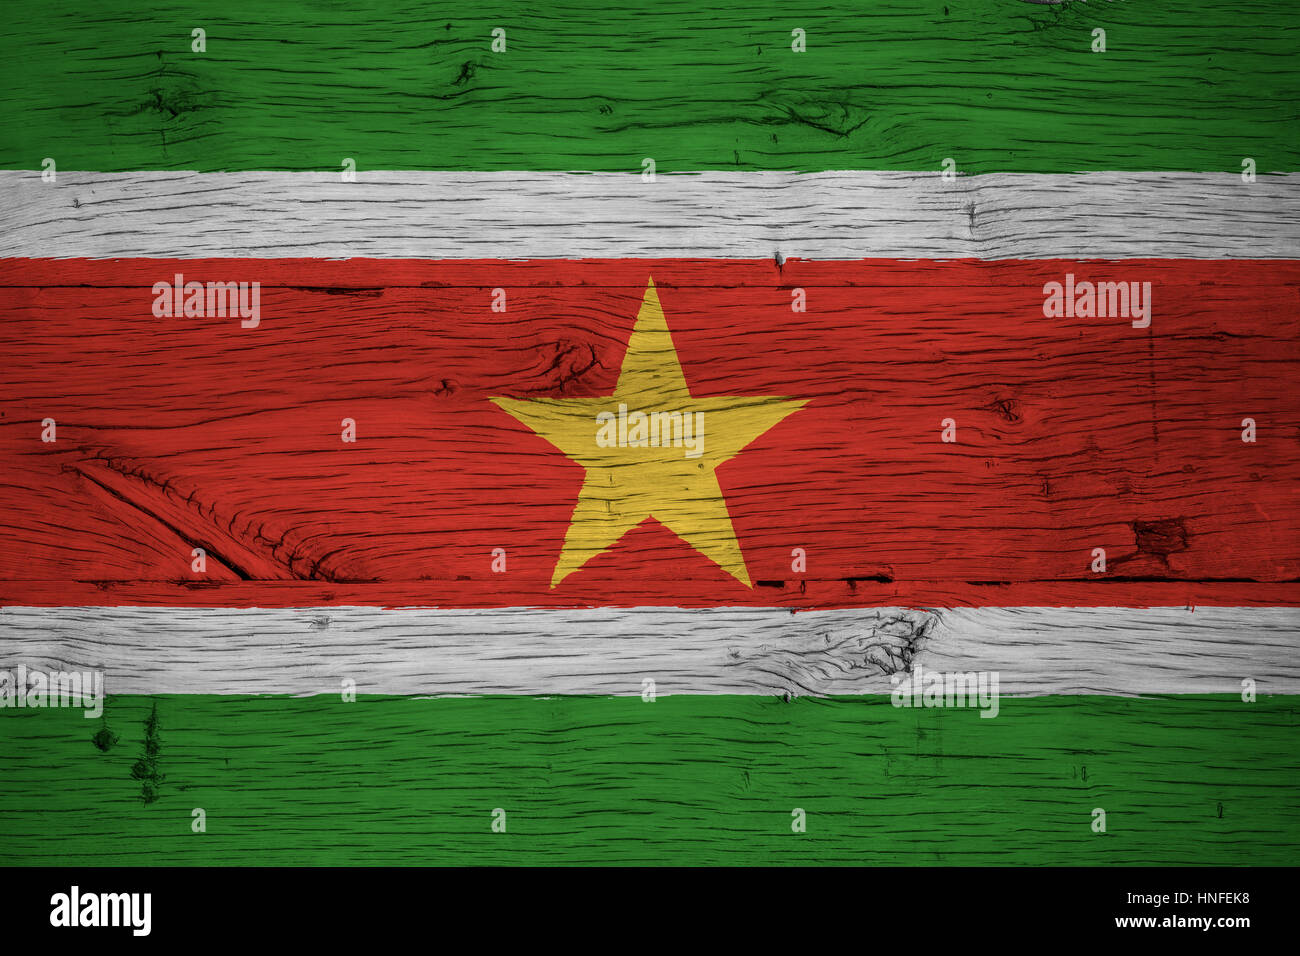 Suriname national flag painted on old oak wood. Painting is colorful on planks of old train carriage. - Stock Image